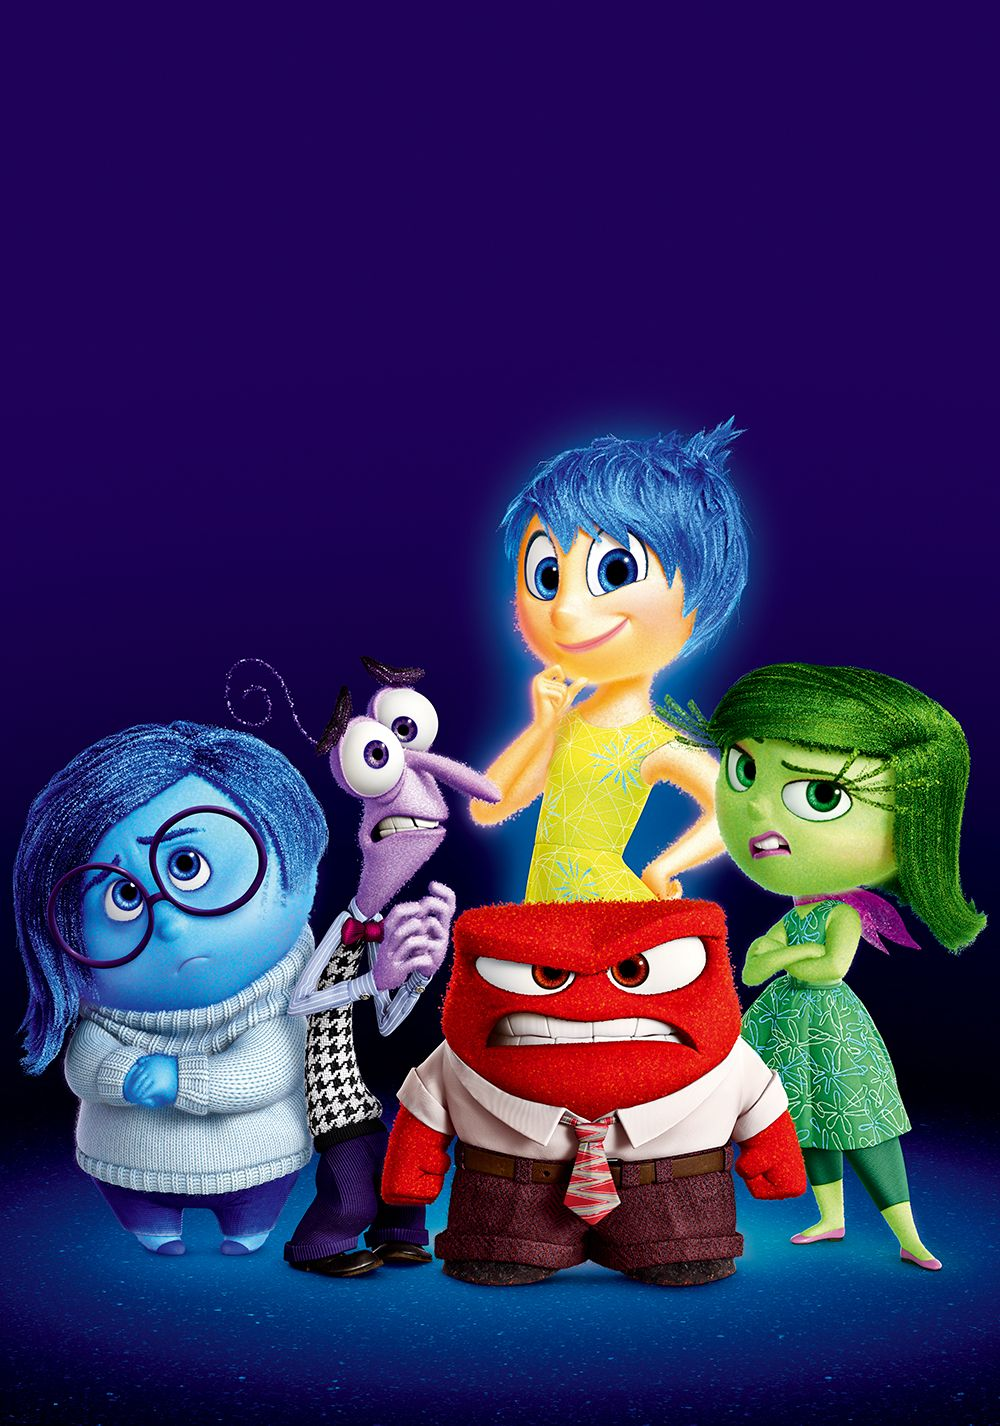 Joy (Inside Out)/Gallery - Disney Wiki